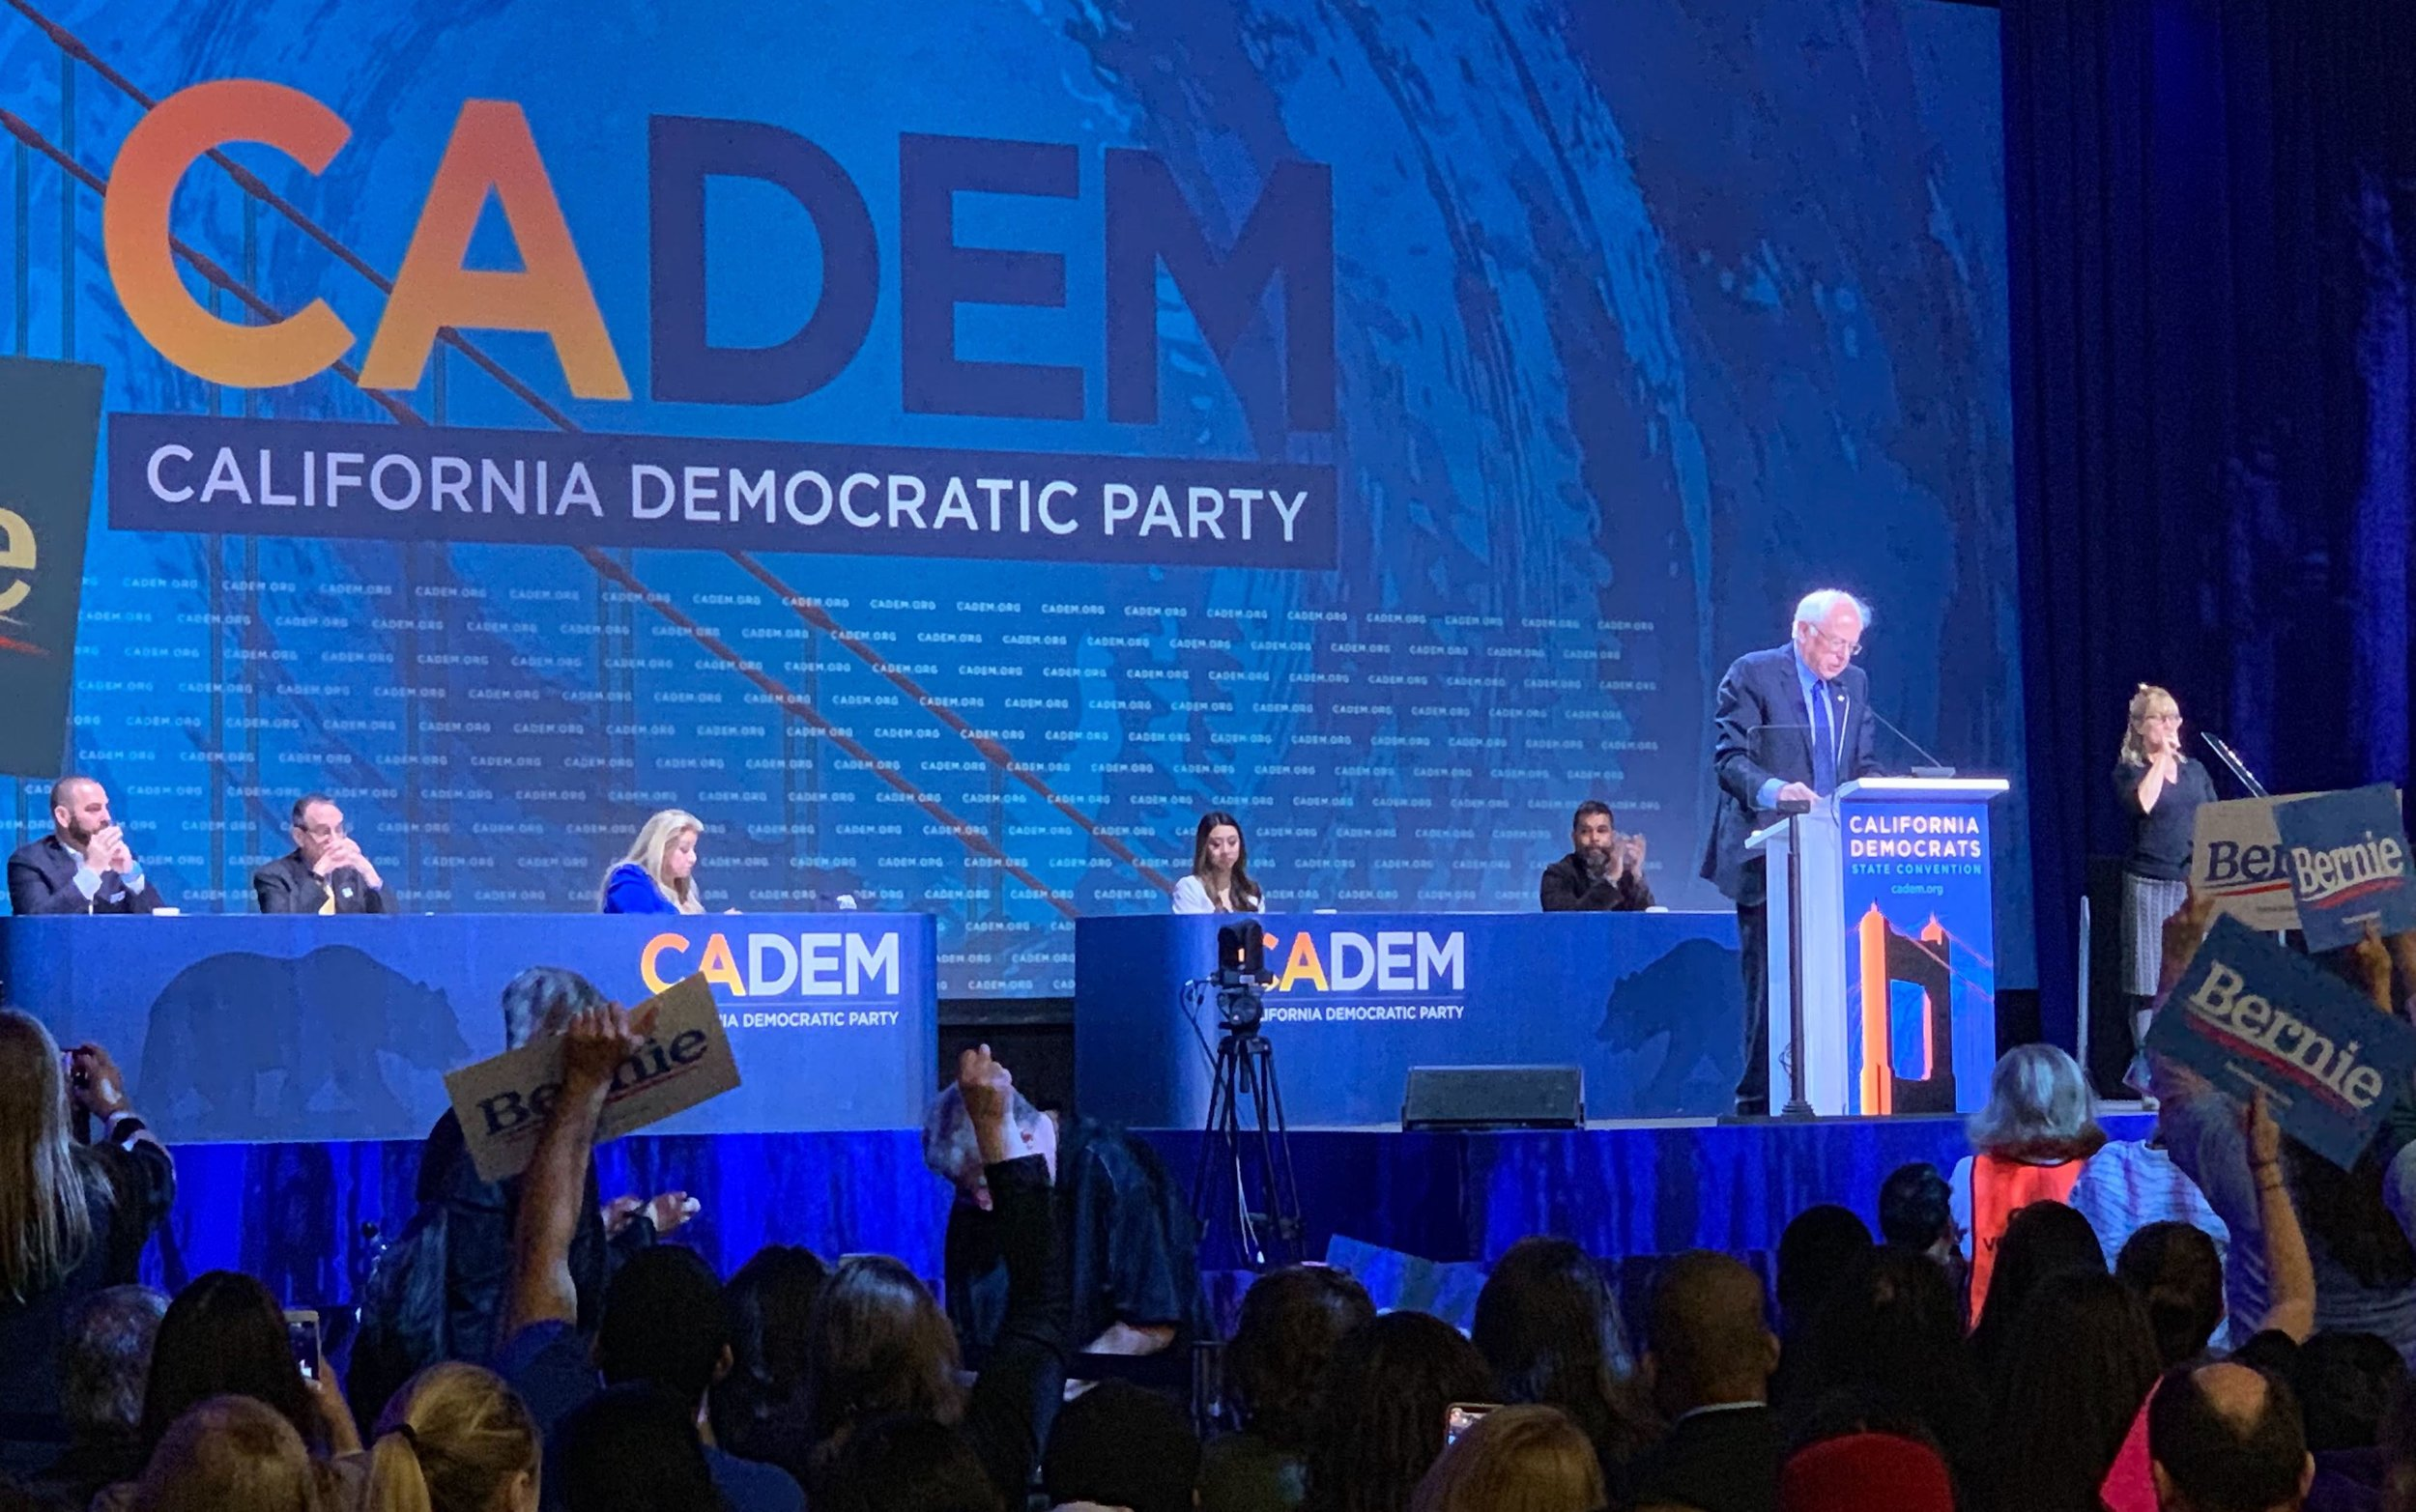 2020 Presidential Candidate Senator Bernie Sanders addresses the crowd at the 2019 California Democratic Party State Convention